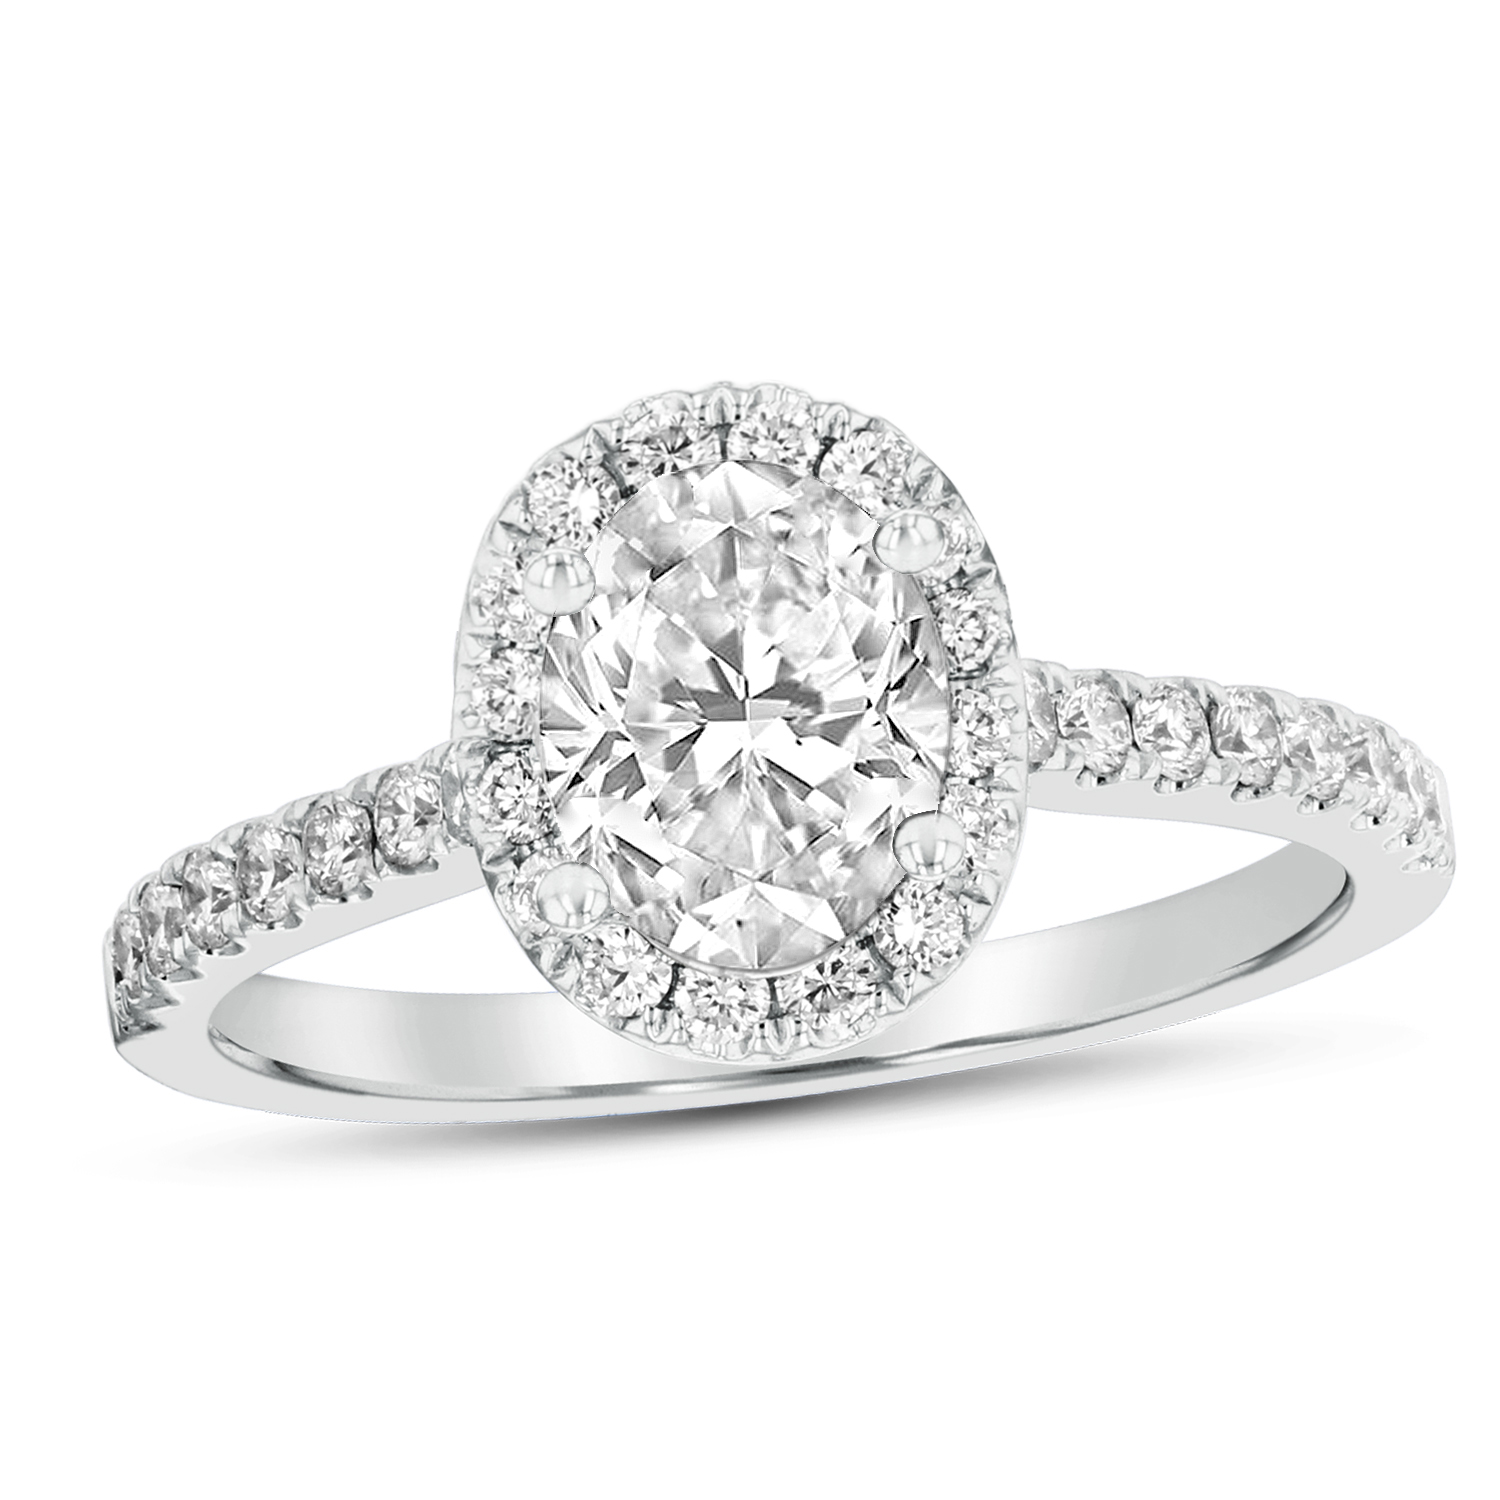 View 1.08ctw Diamond Engagement Ring in Platinum